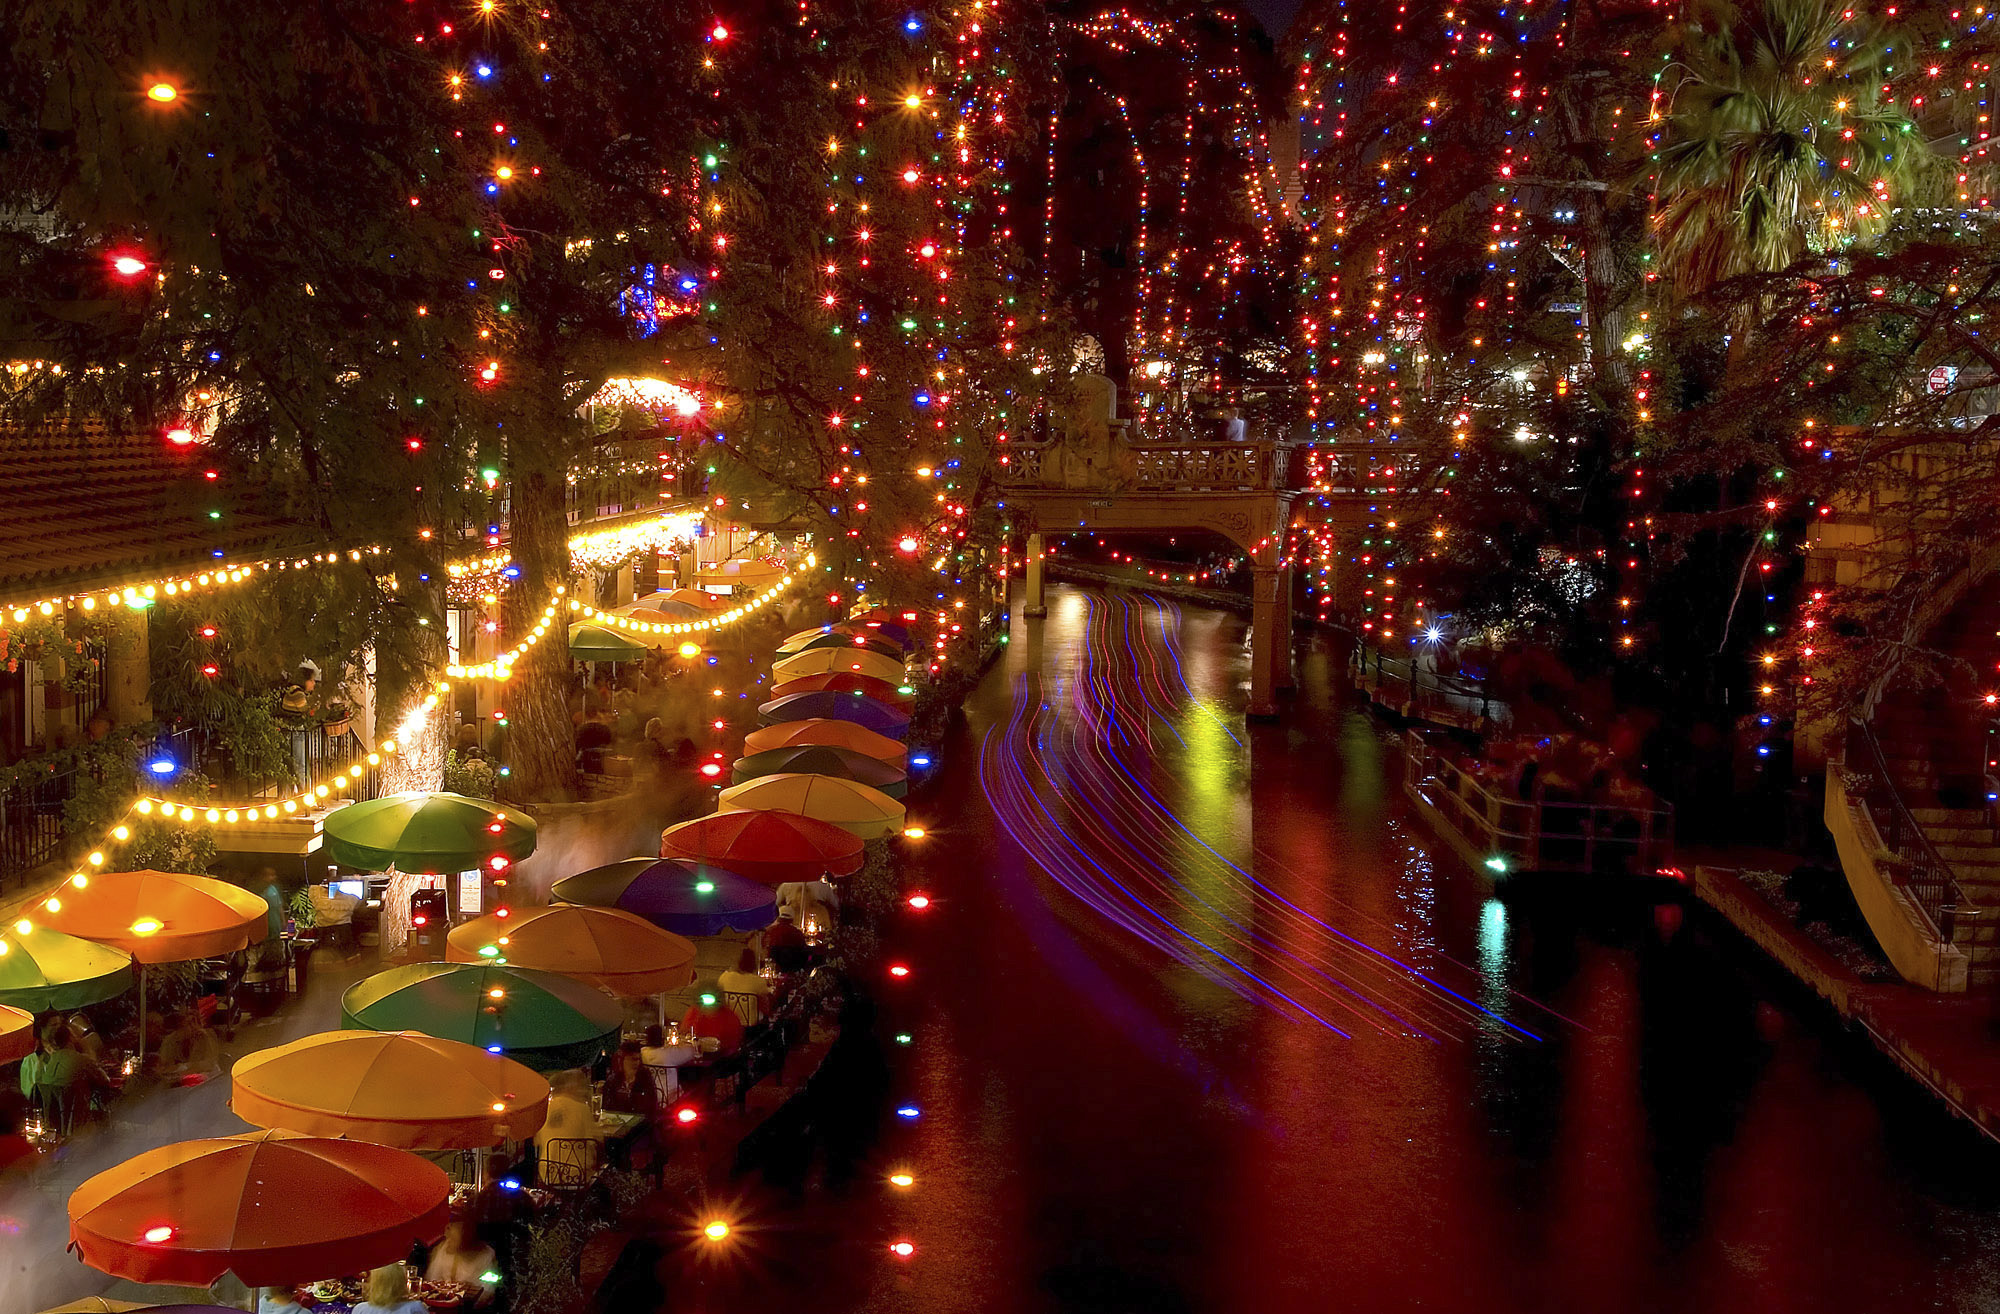 Best Place For Christmas Decorations 19 Of The Best Places To See Holiday Lights In San Antonio